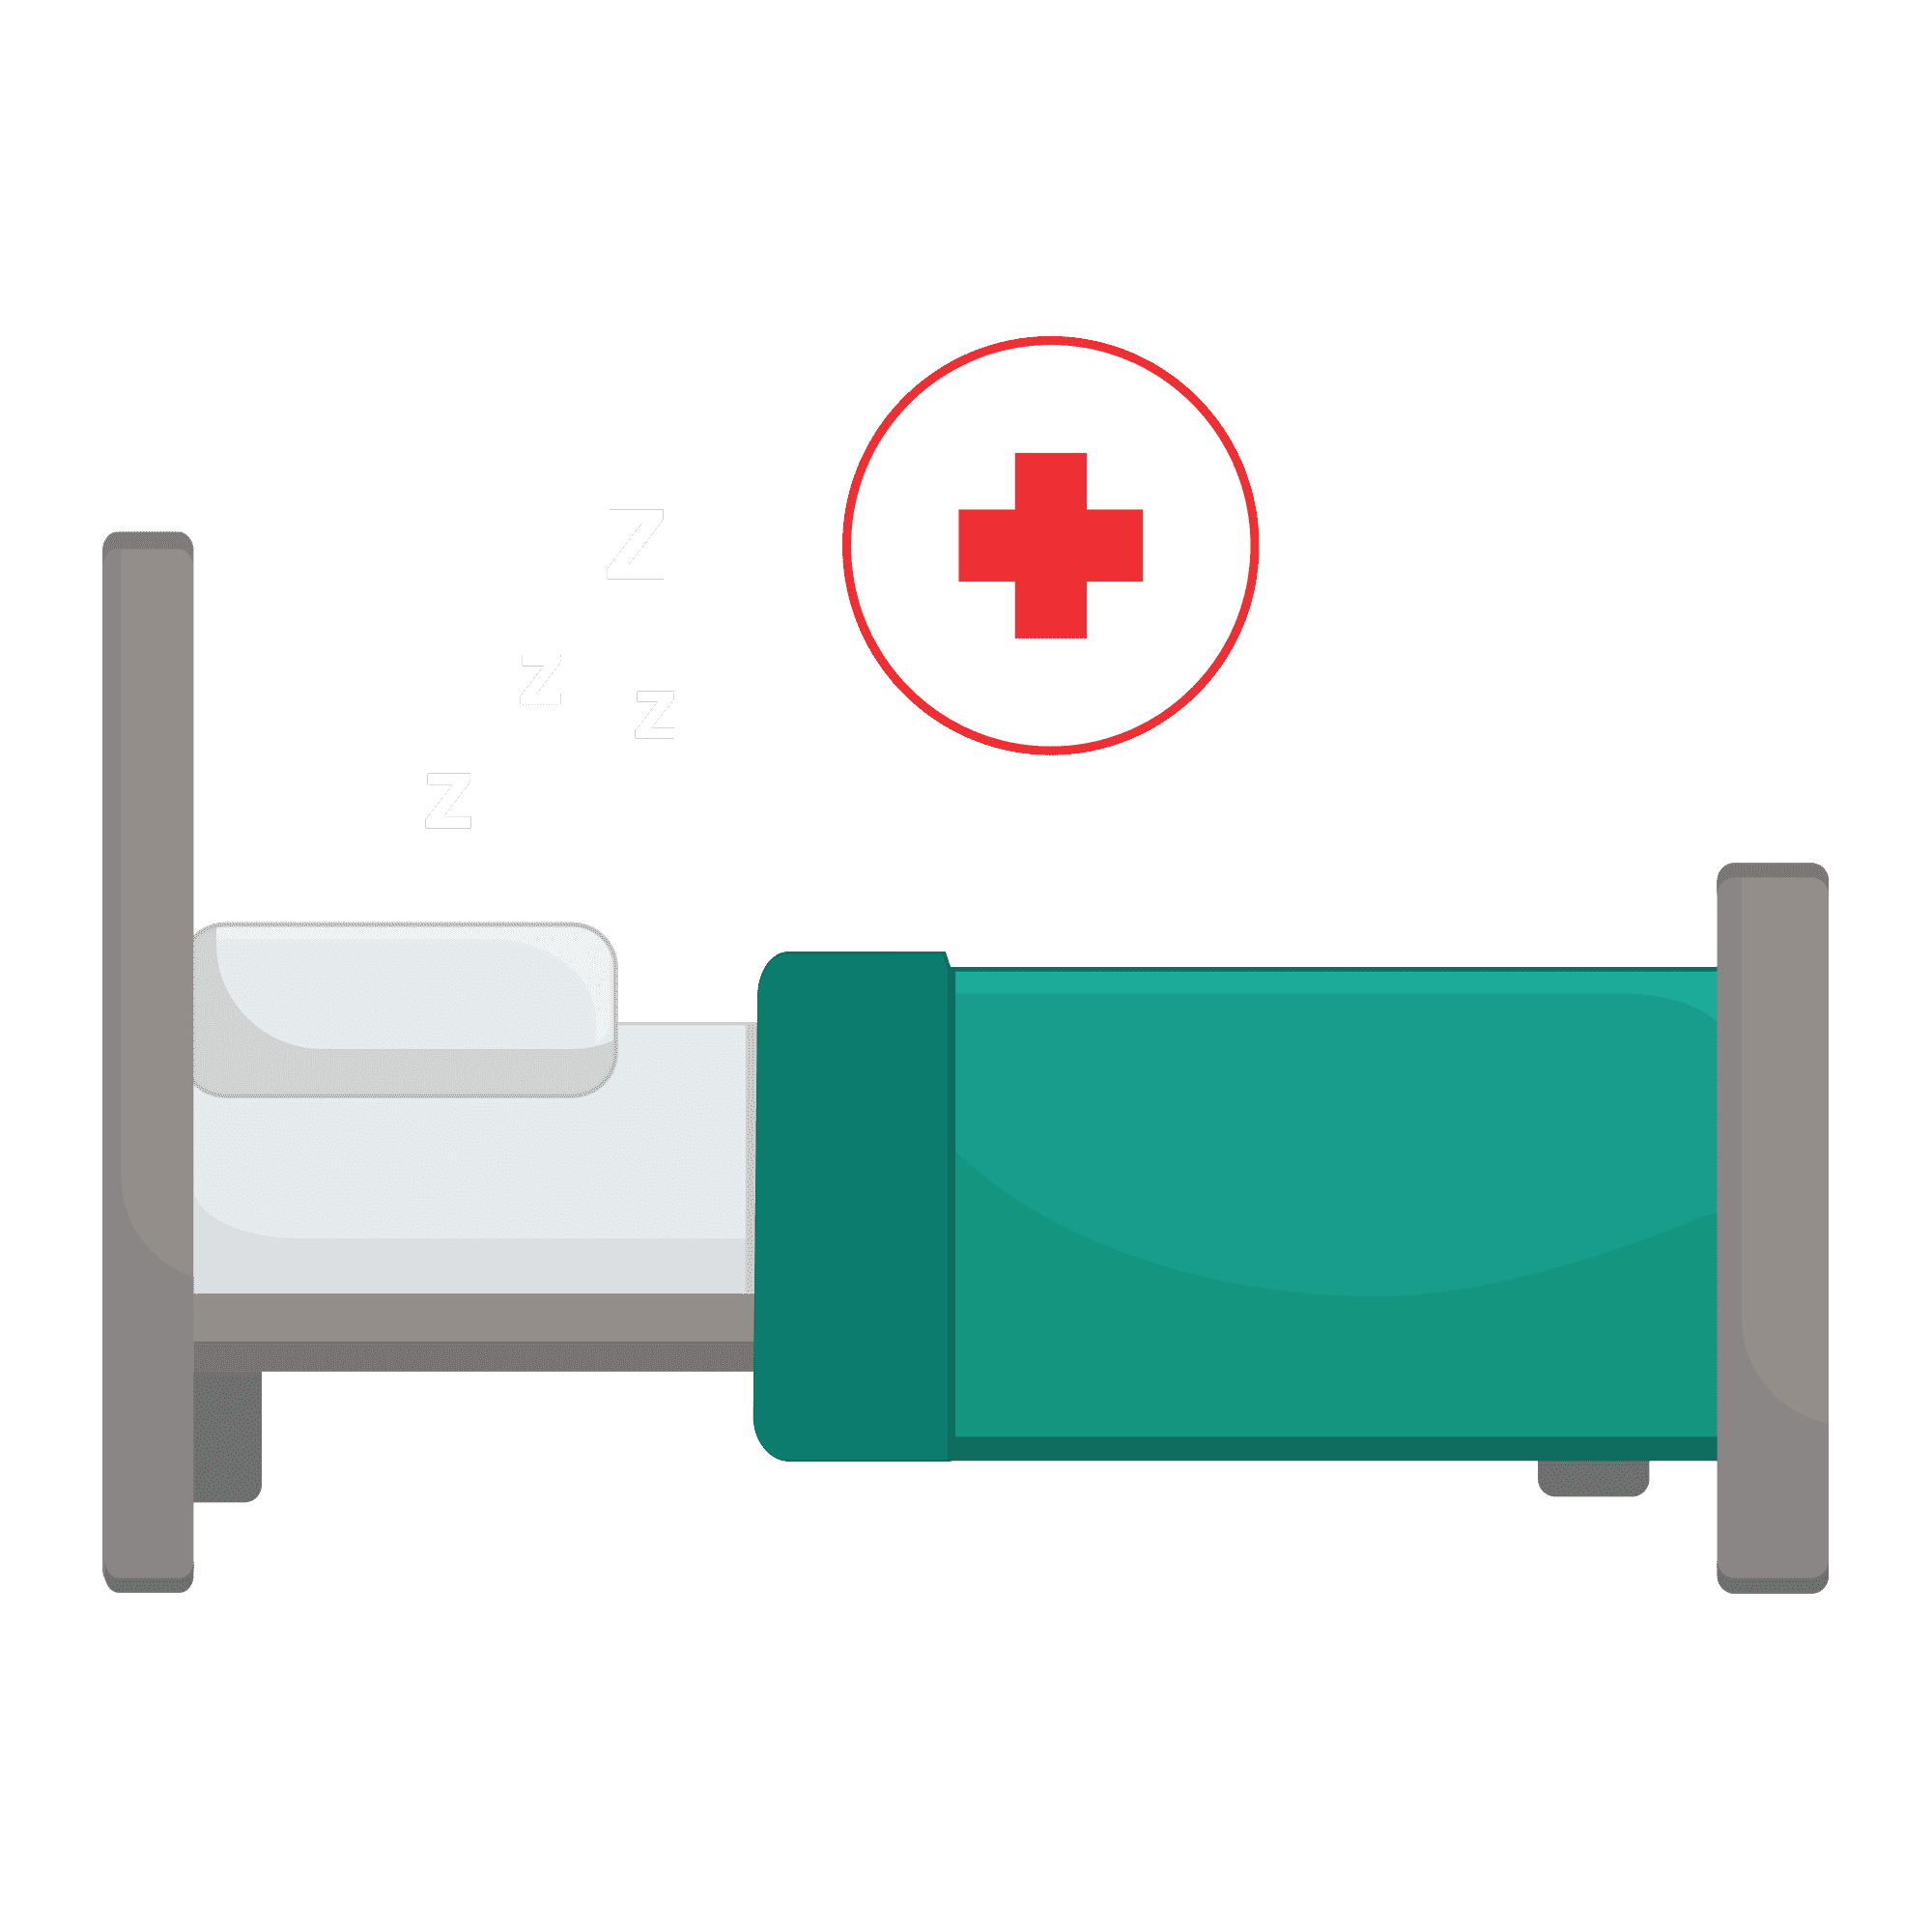 Illustration of hospital bed with z's above it